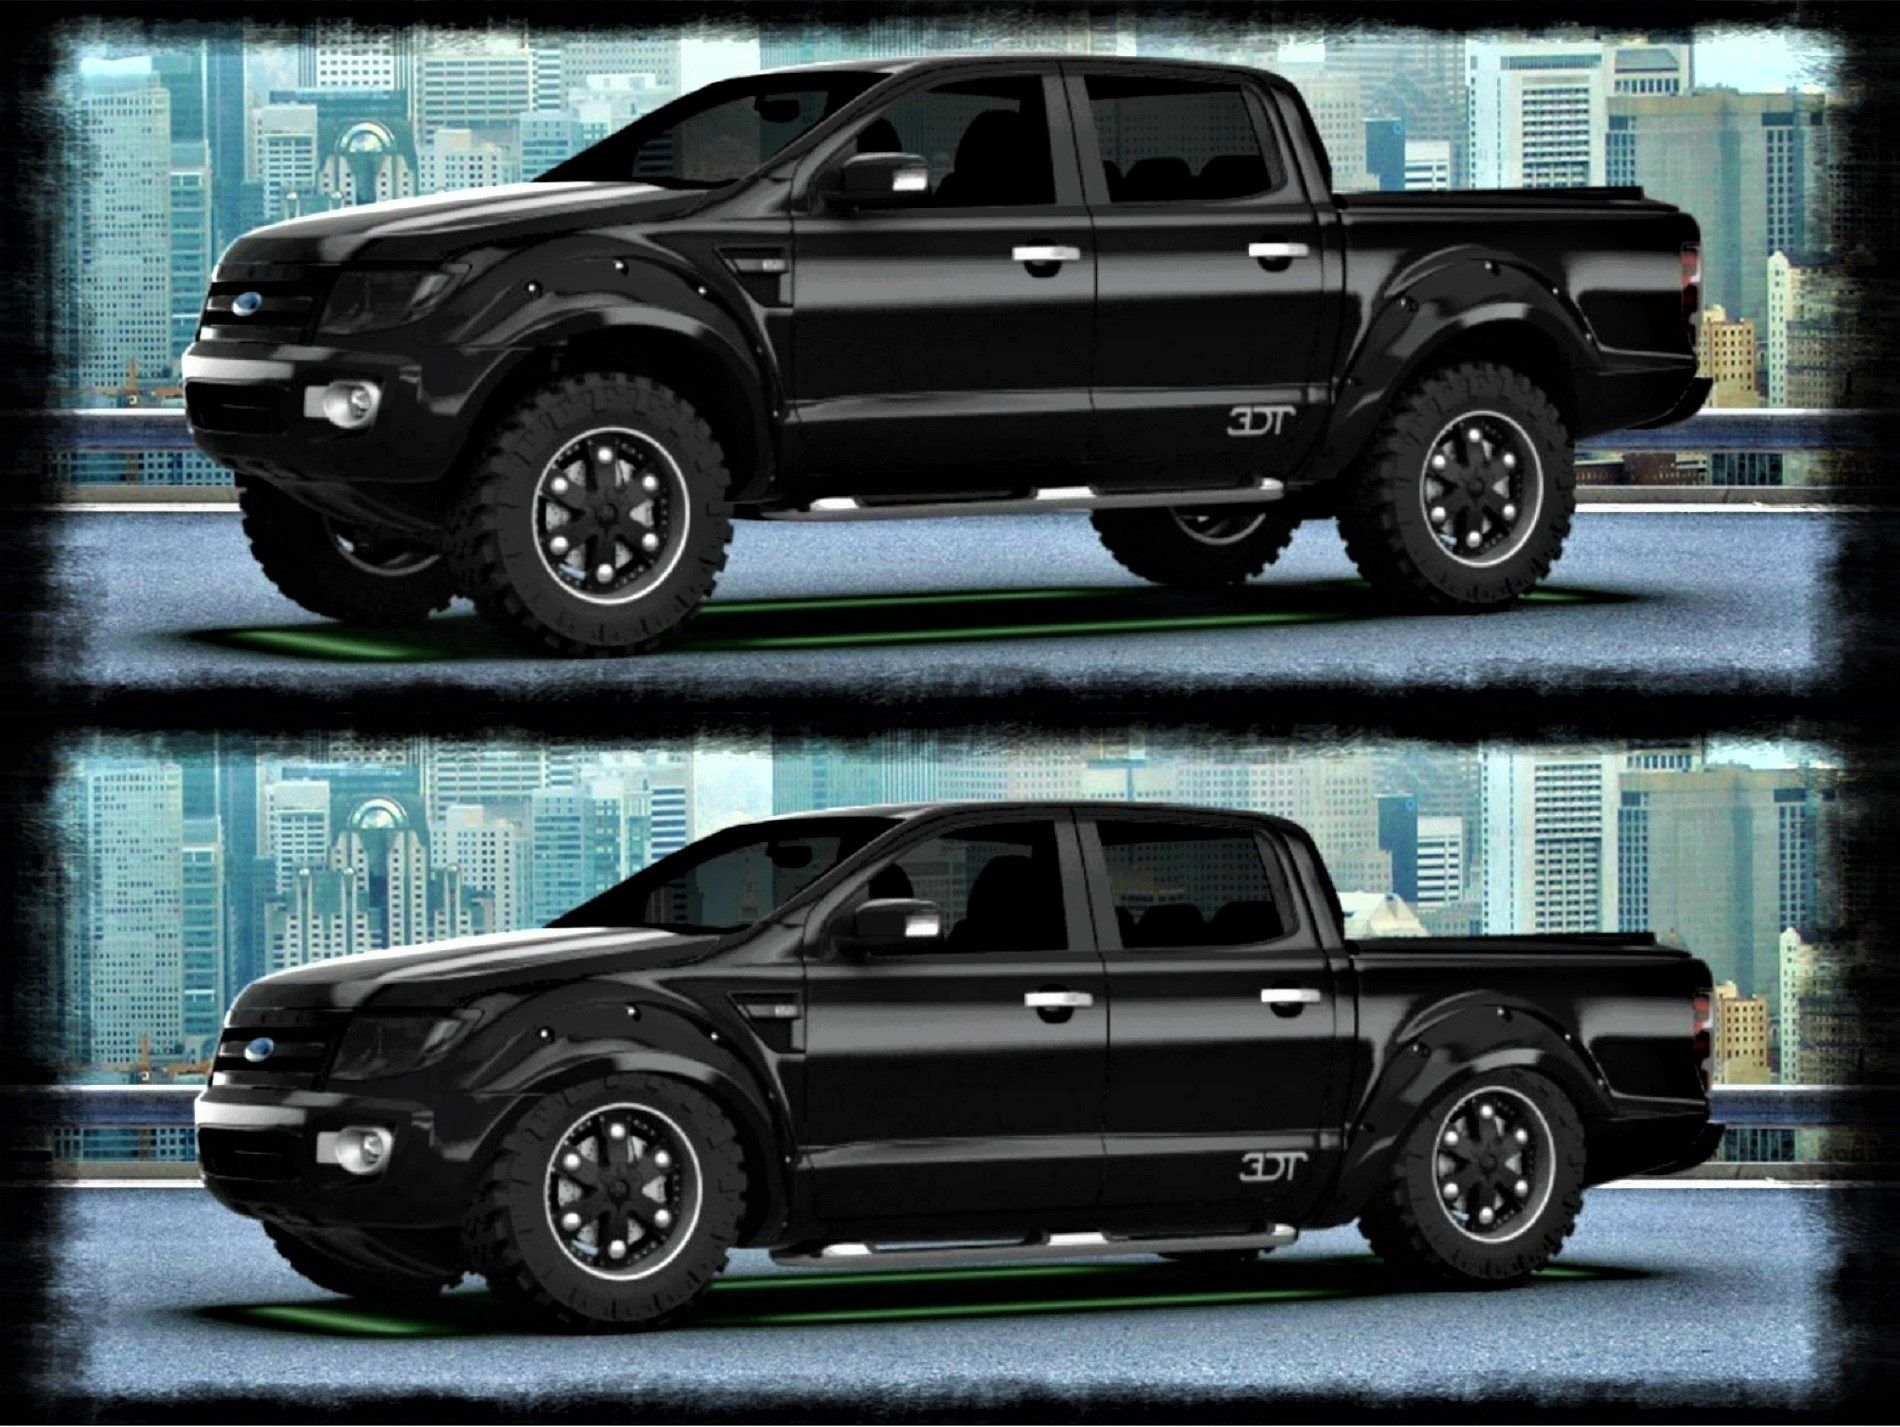 Ford Ranger Black Edition From 26 945 Exc Vat Suspension At Full Height Slammed Down Low Http 3dtuning Co Ford Ranger Truck Ranger Truck Ford Ranger